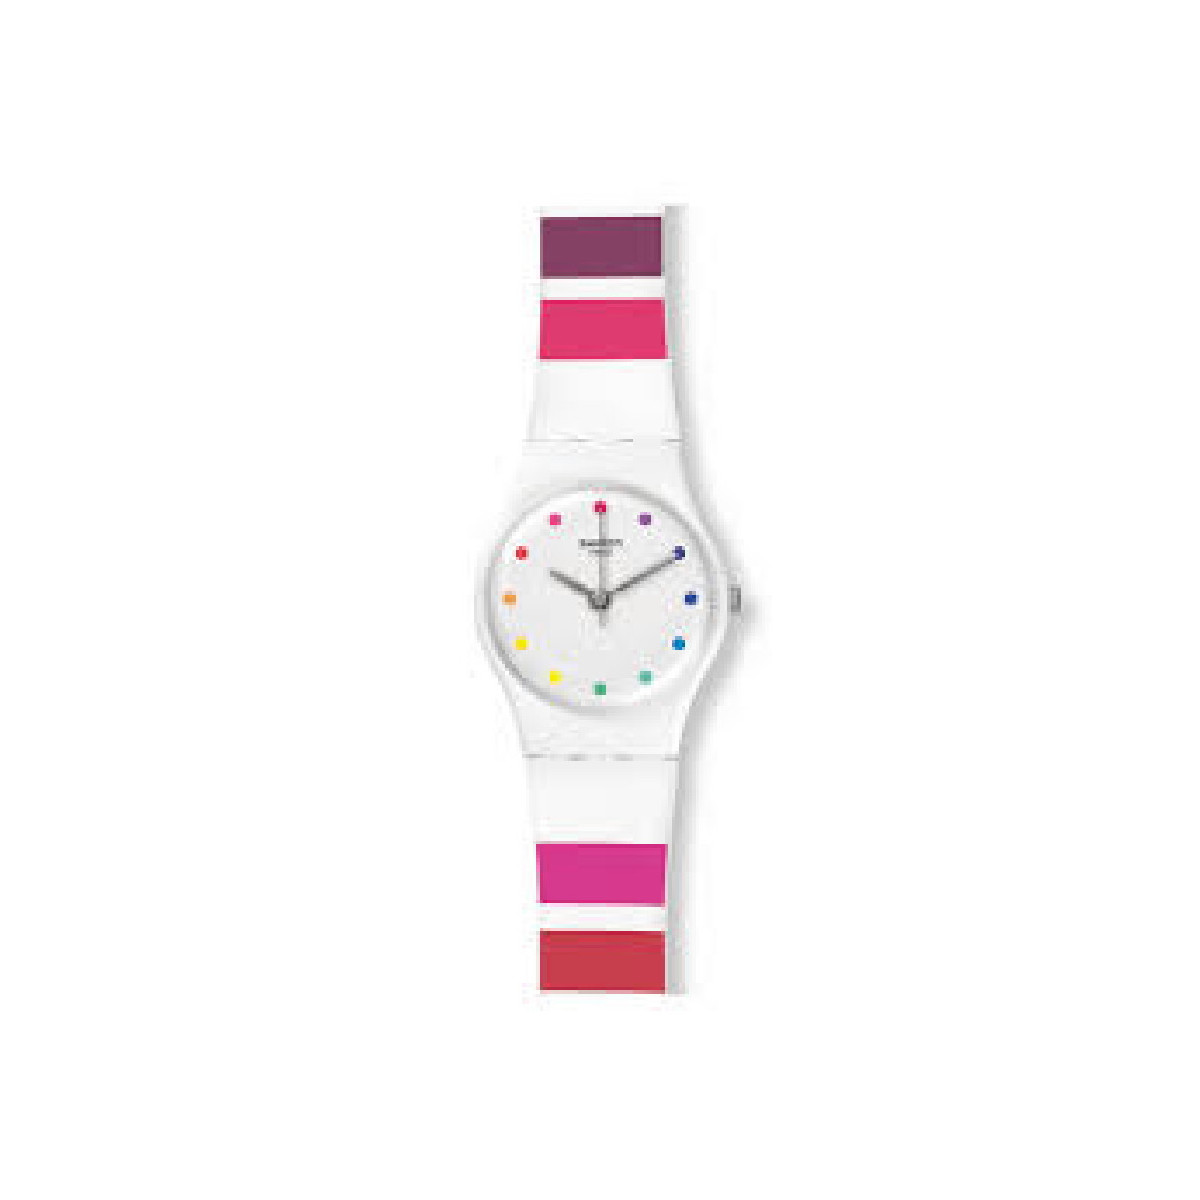 Swatch_LV149_Colorao_outlet_50%